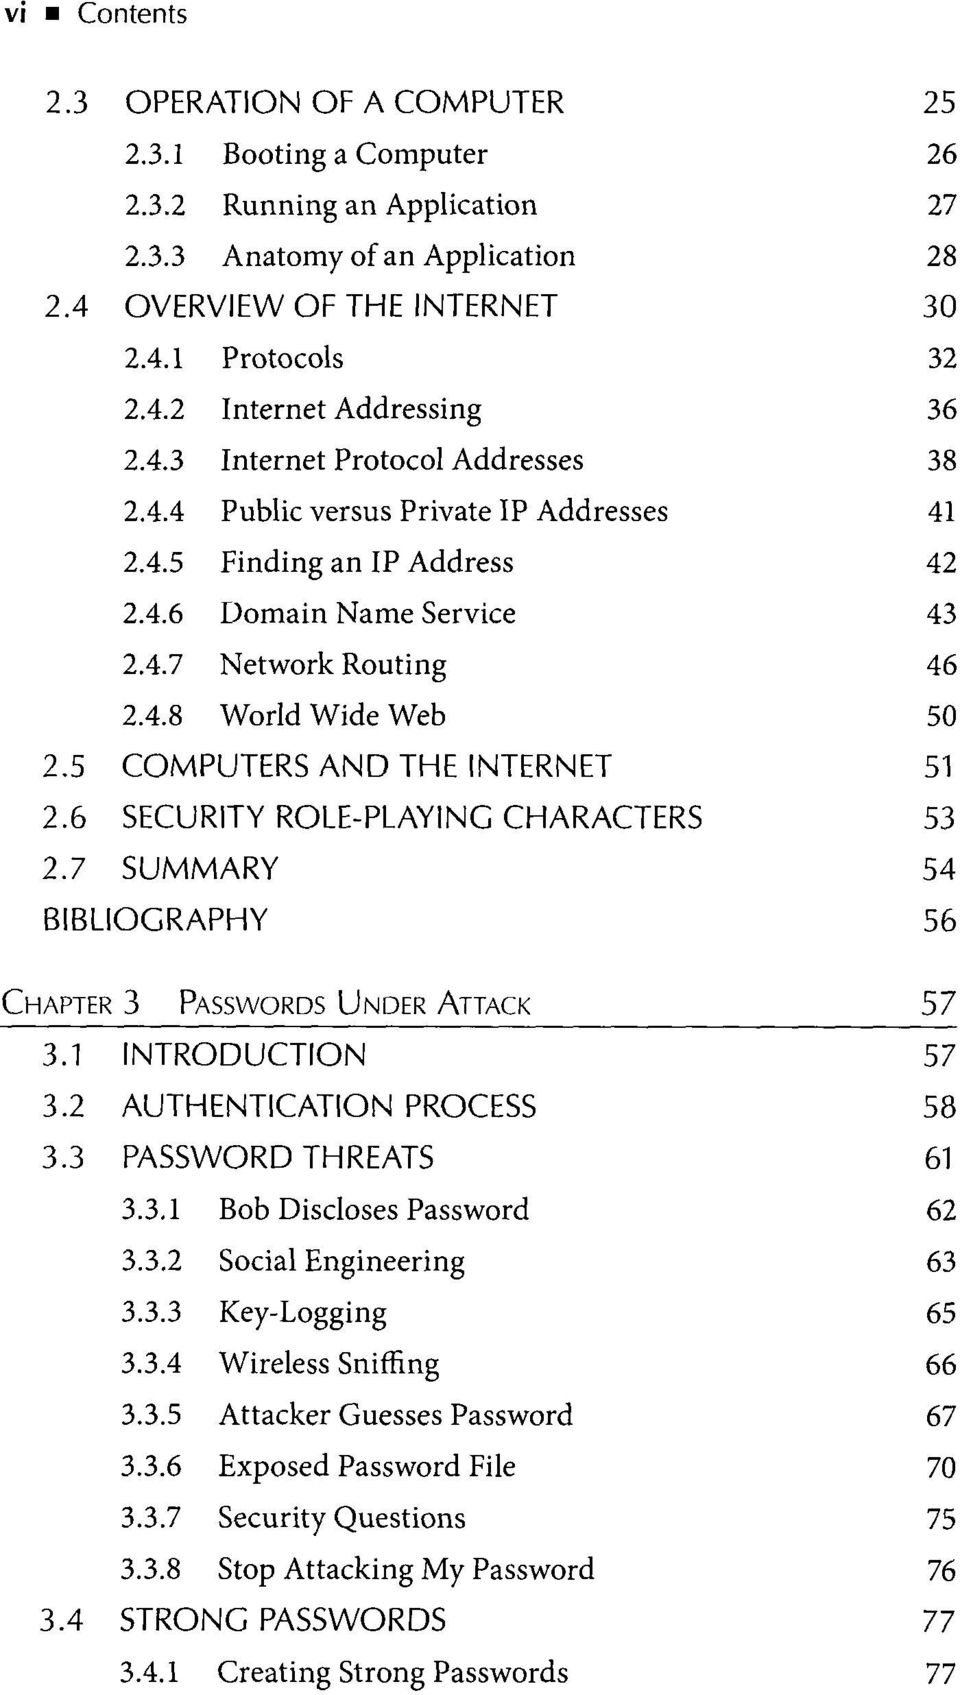 5 COMPUTERS AND THE INTERNET 51 2.6 SECURITY ROLE-PLAYING CHARACTERS 53 2.7 SUMMARY 54 BIBLIOGRAPHY 56 Chapter 3 Passwords Under Attack 57 3.1 INTRODUCTION 57 3.2 AUTHENTICATION PROCESS 58 3.